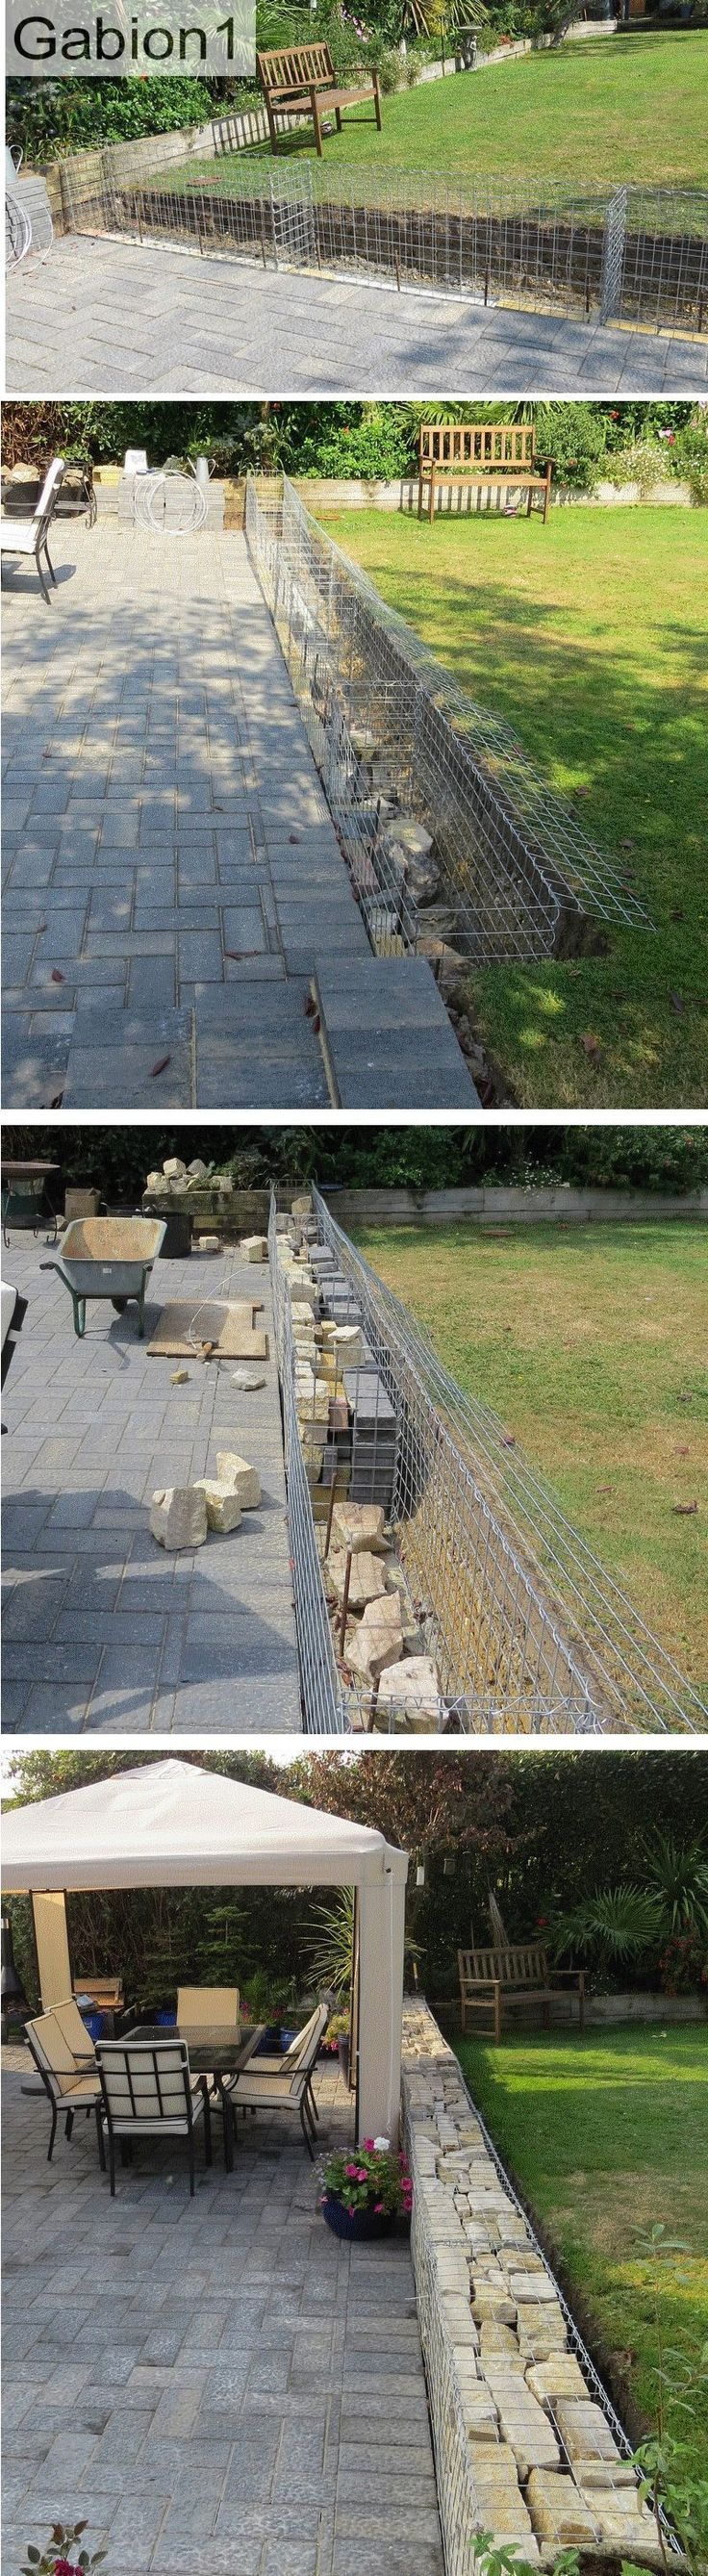 Gabion garden wall using 1800 x 675 x 375mm gabion baskets http://www.gabion1.co.uk